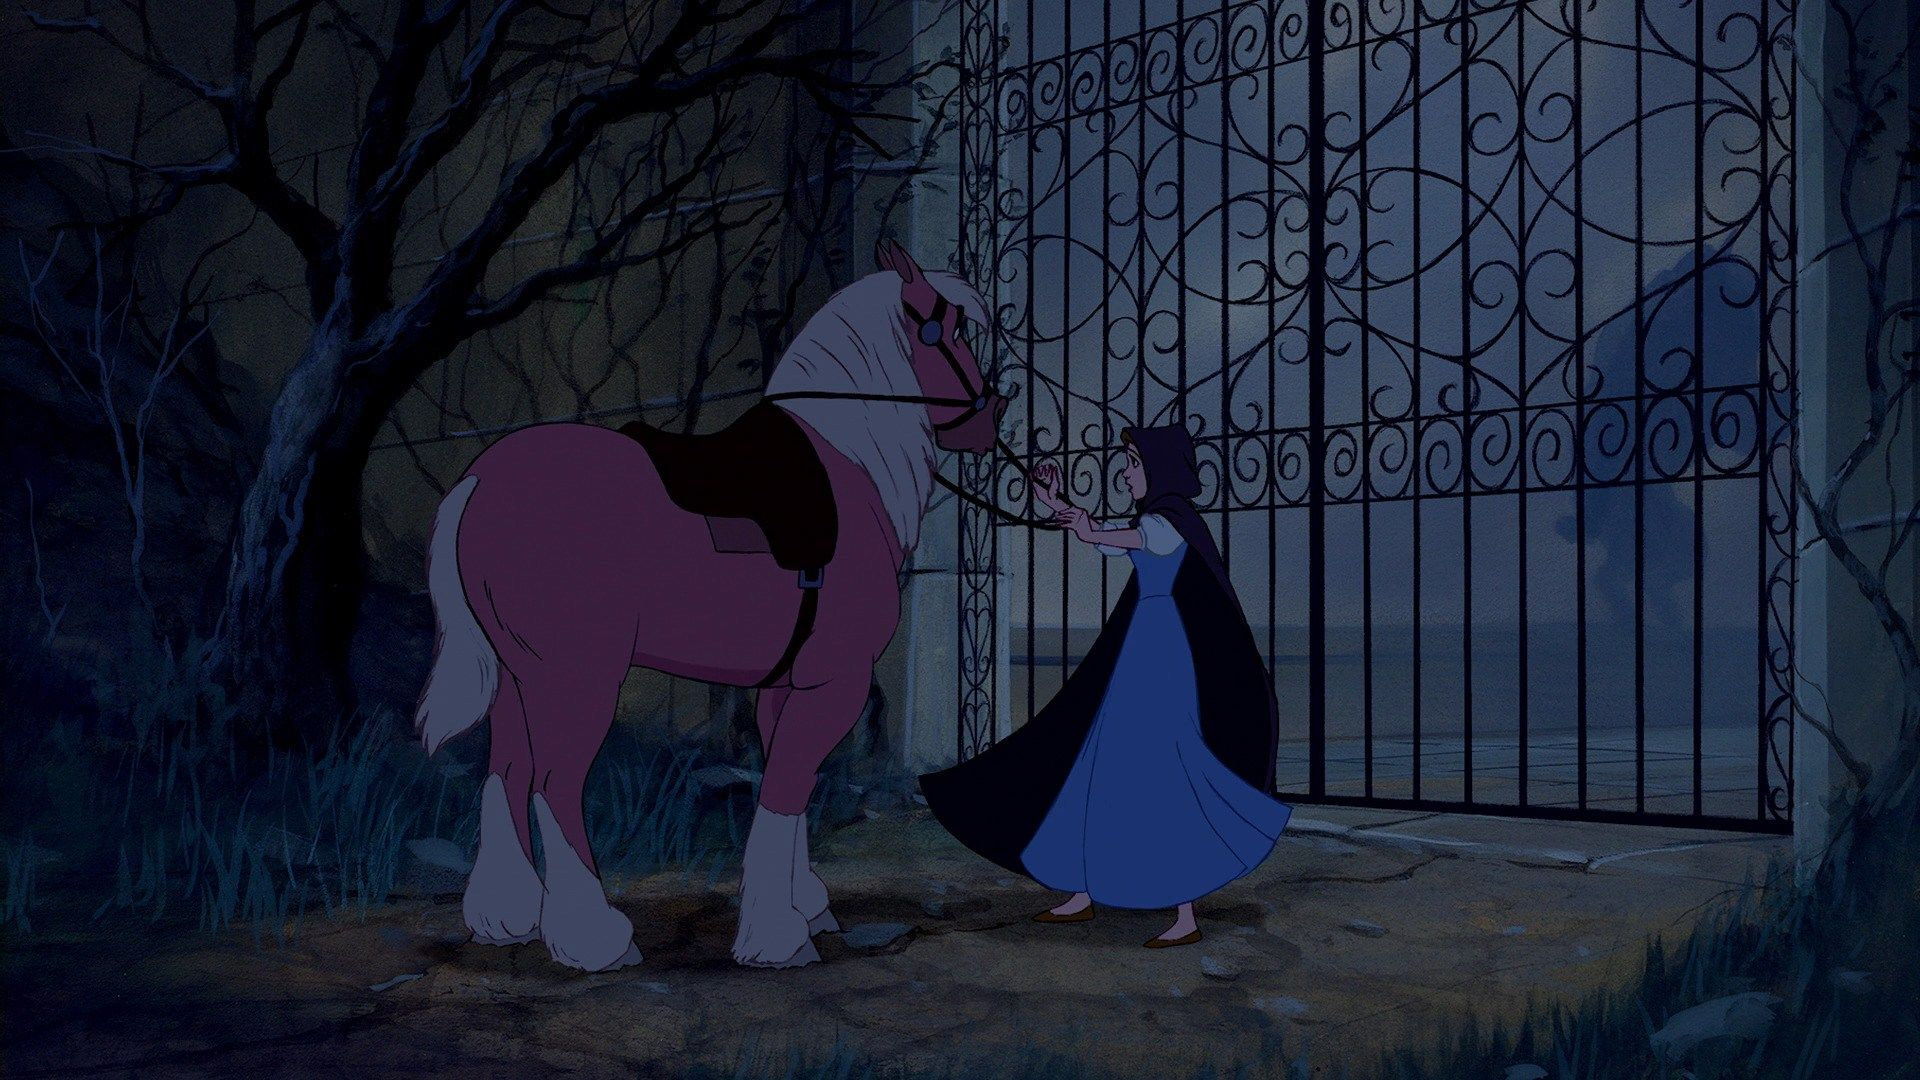 Pin by Eichner1 on Beauty and the beast | Disney beauty and the ...